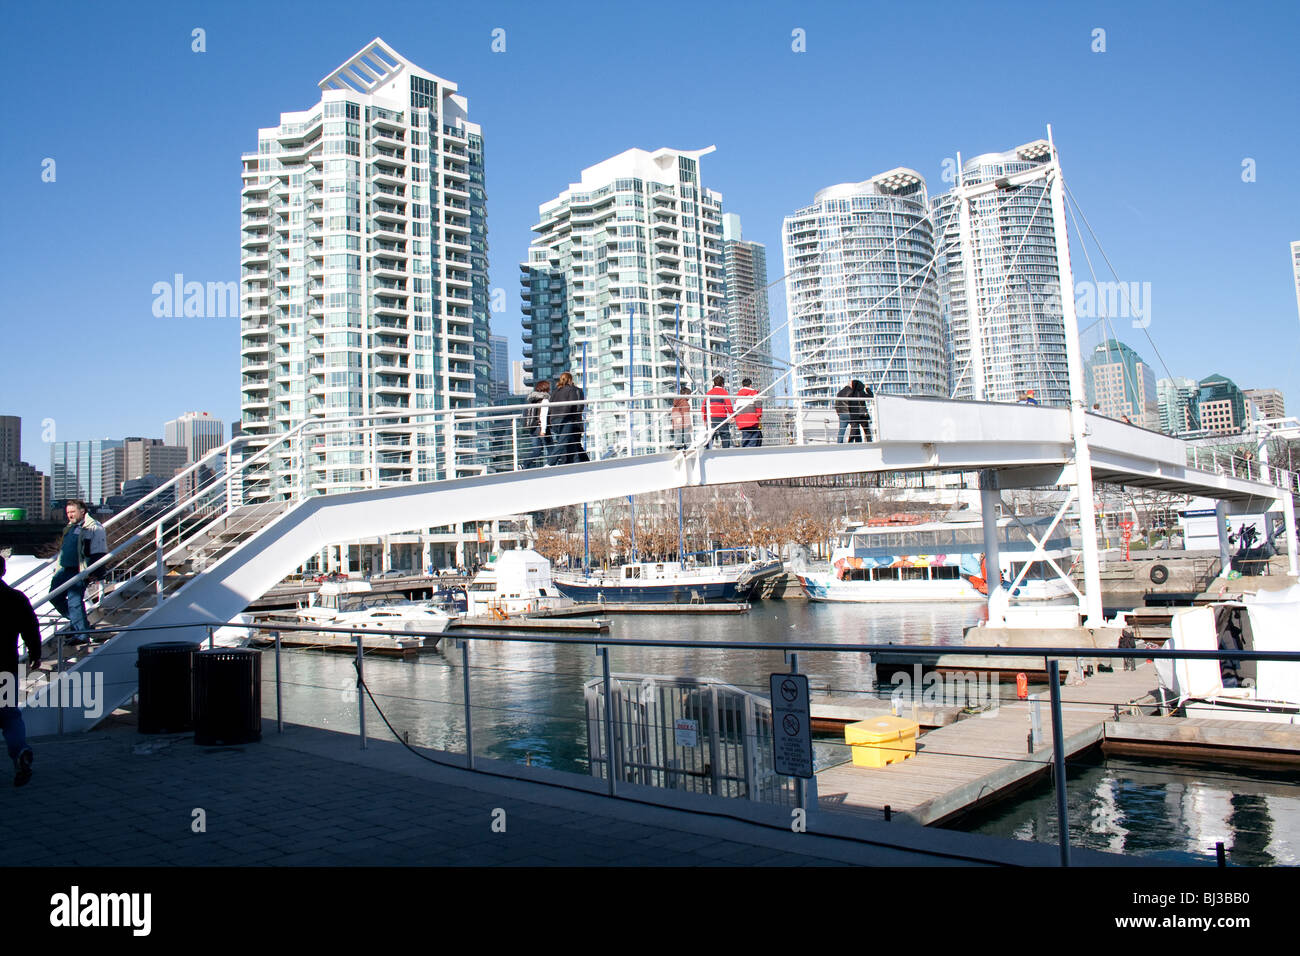 Luxury condo residential buildings in front of lake ontario just right behind harbourfront center in the winter - Stock Image